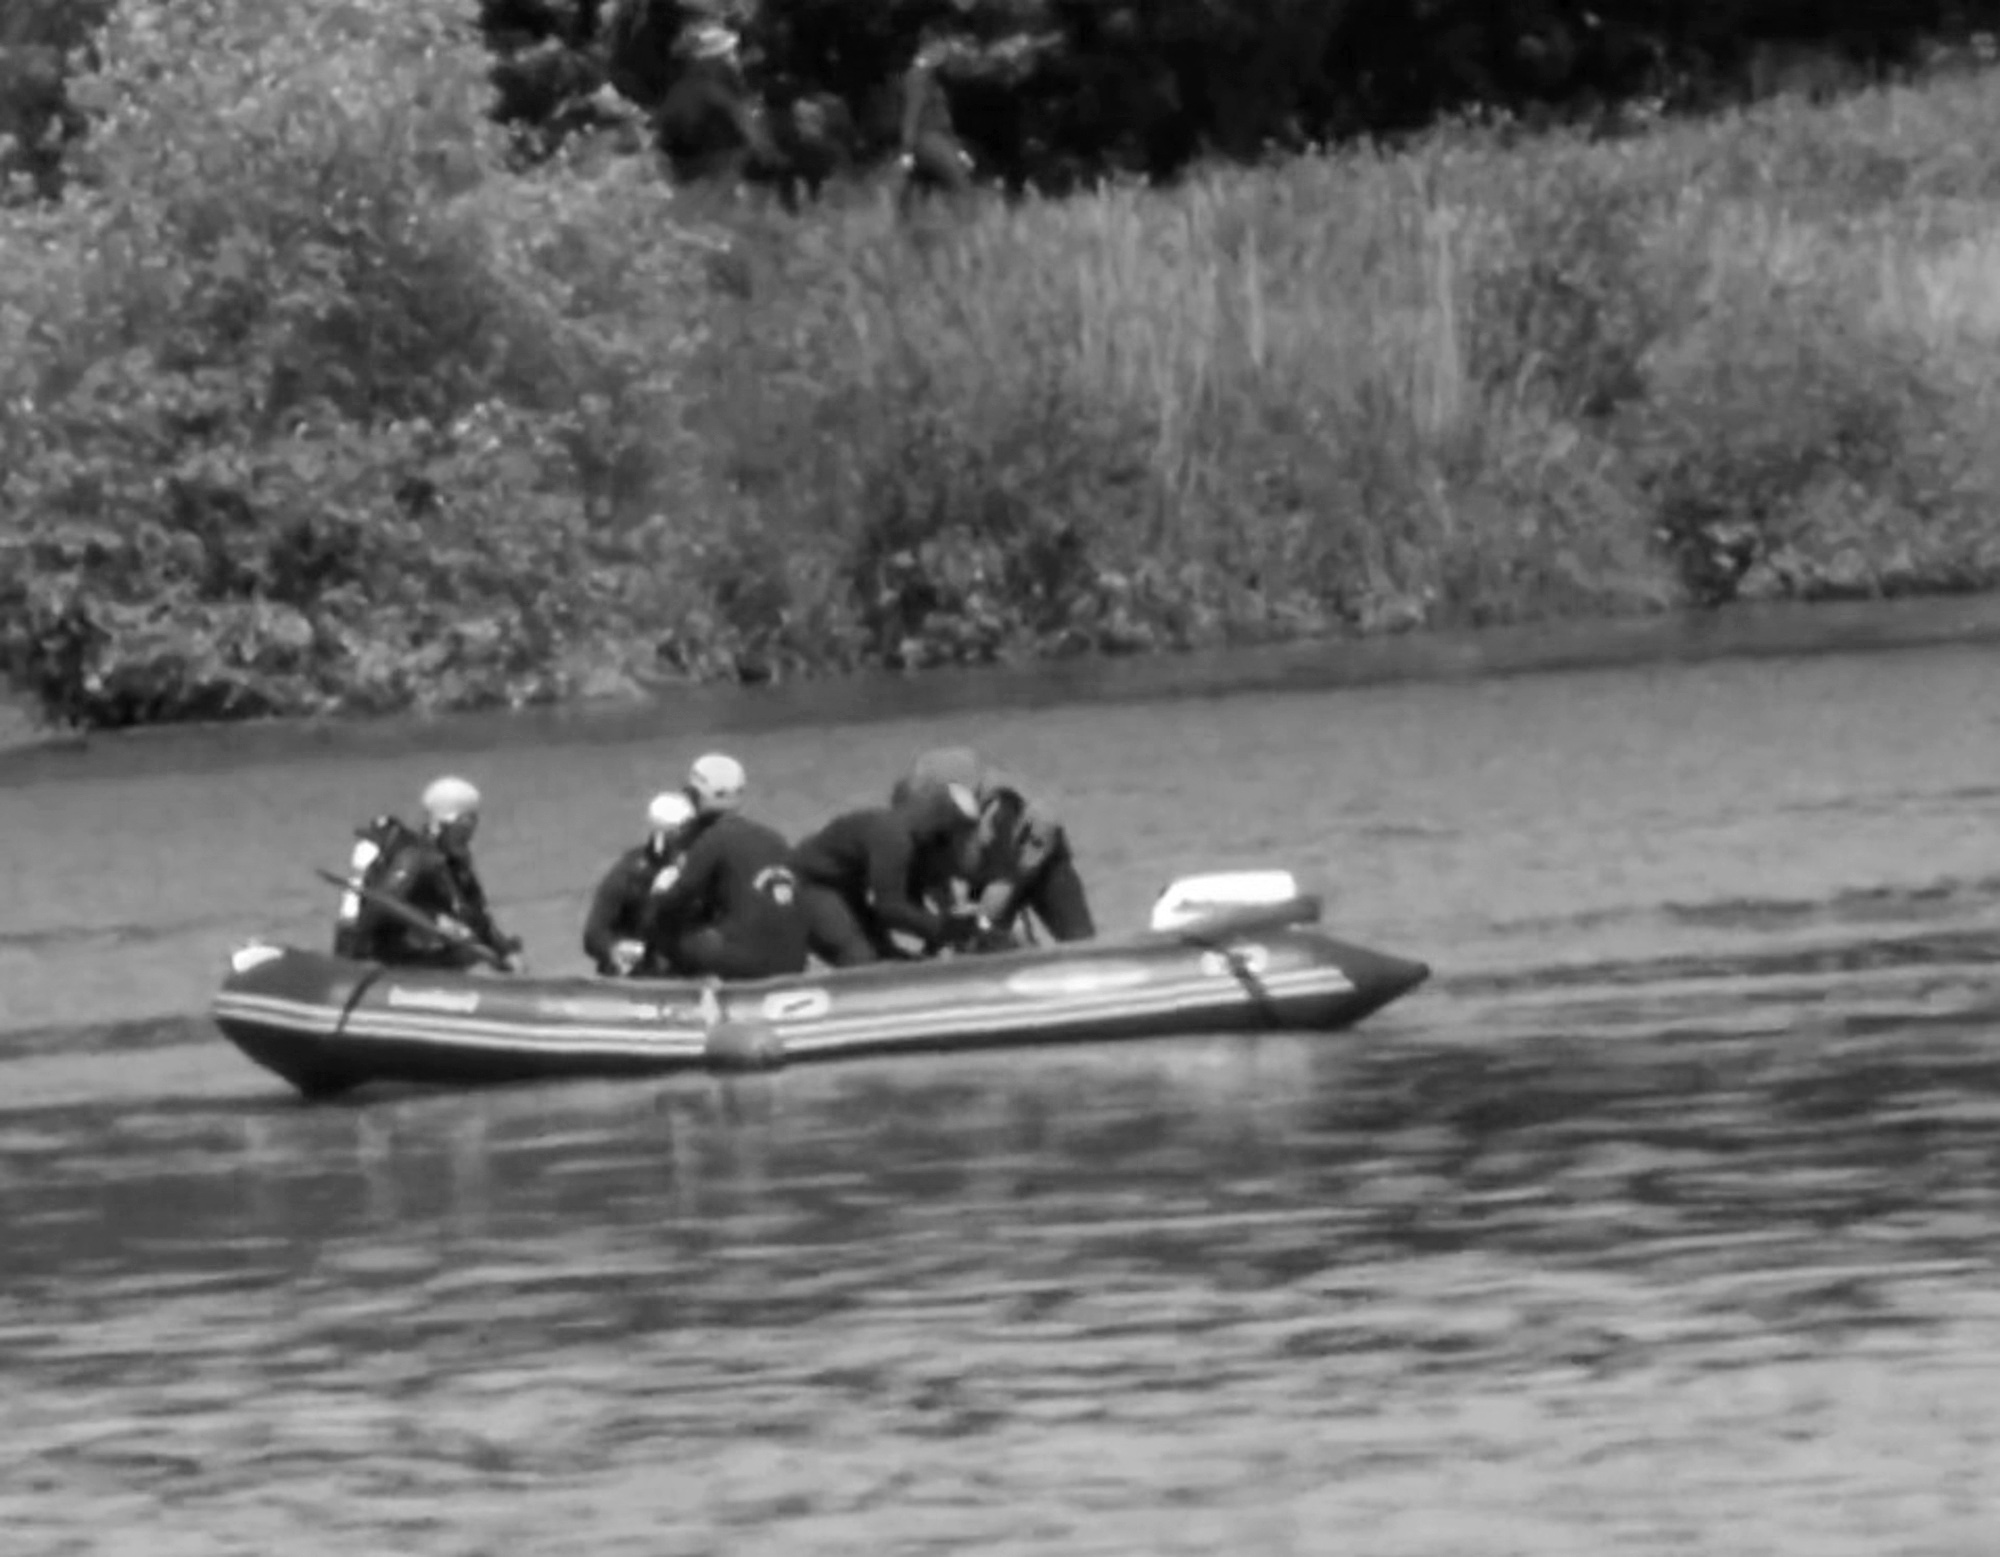 Body Of 6yo Girl Found After Fathers Day Dinghy Accident